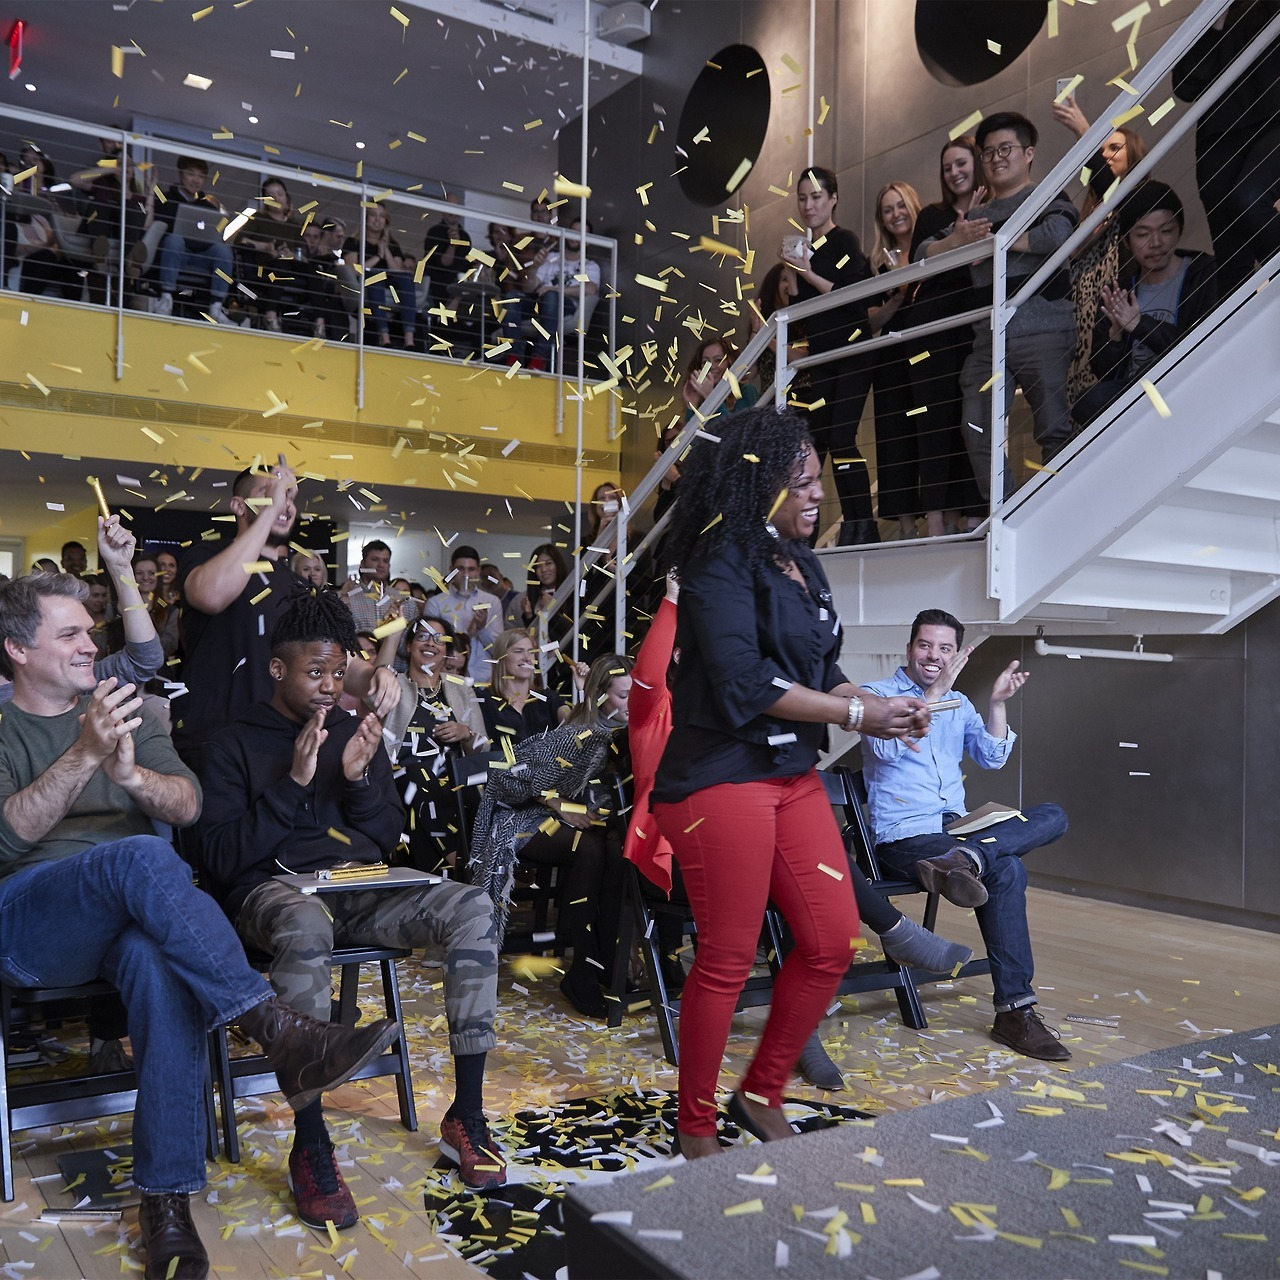 TBWA\Chiat\Day nominated for Digiday's Most Committed to Diversity and Inclusion Award